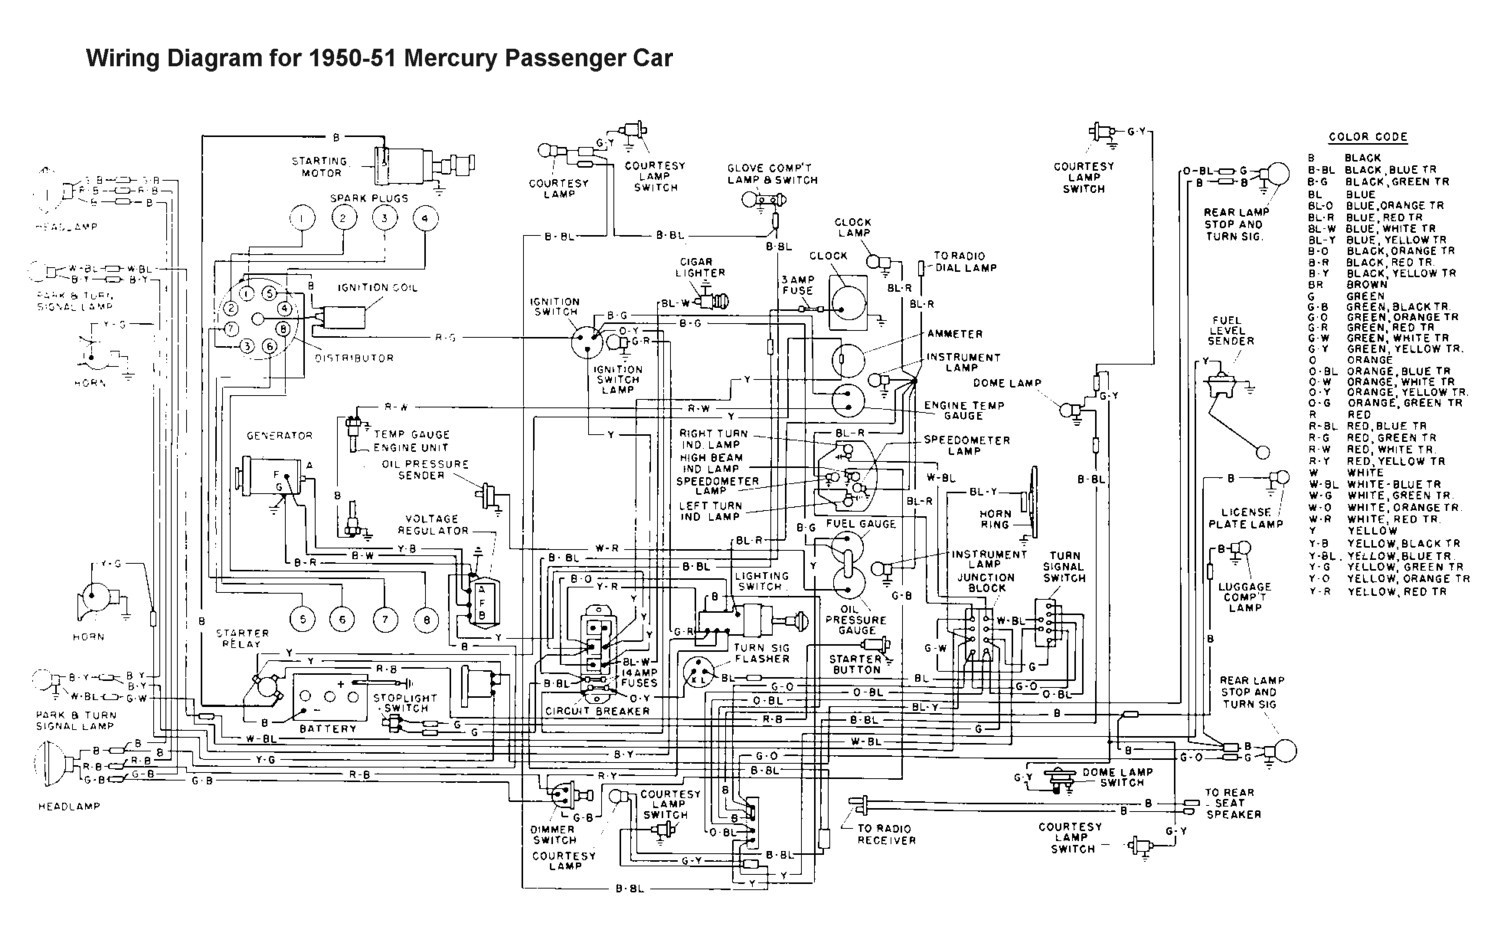 Flathead_Electrical_wiring1950 51merc 1951 plymouth wiring diagram 1951 wiring diagrams instruction 1954 plymouth belvedere wiring diagram at crackthecode.co